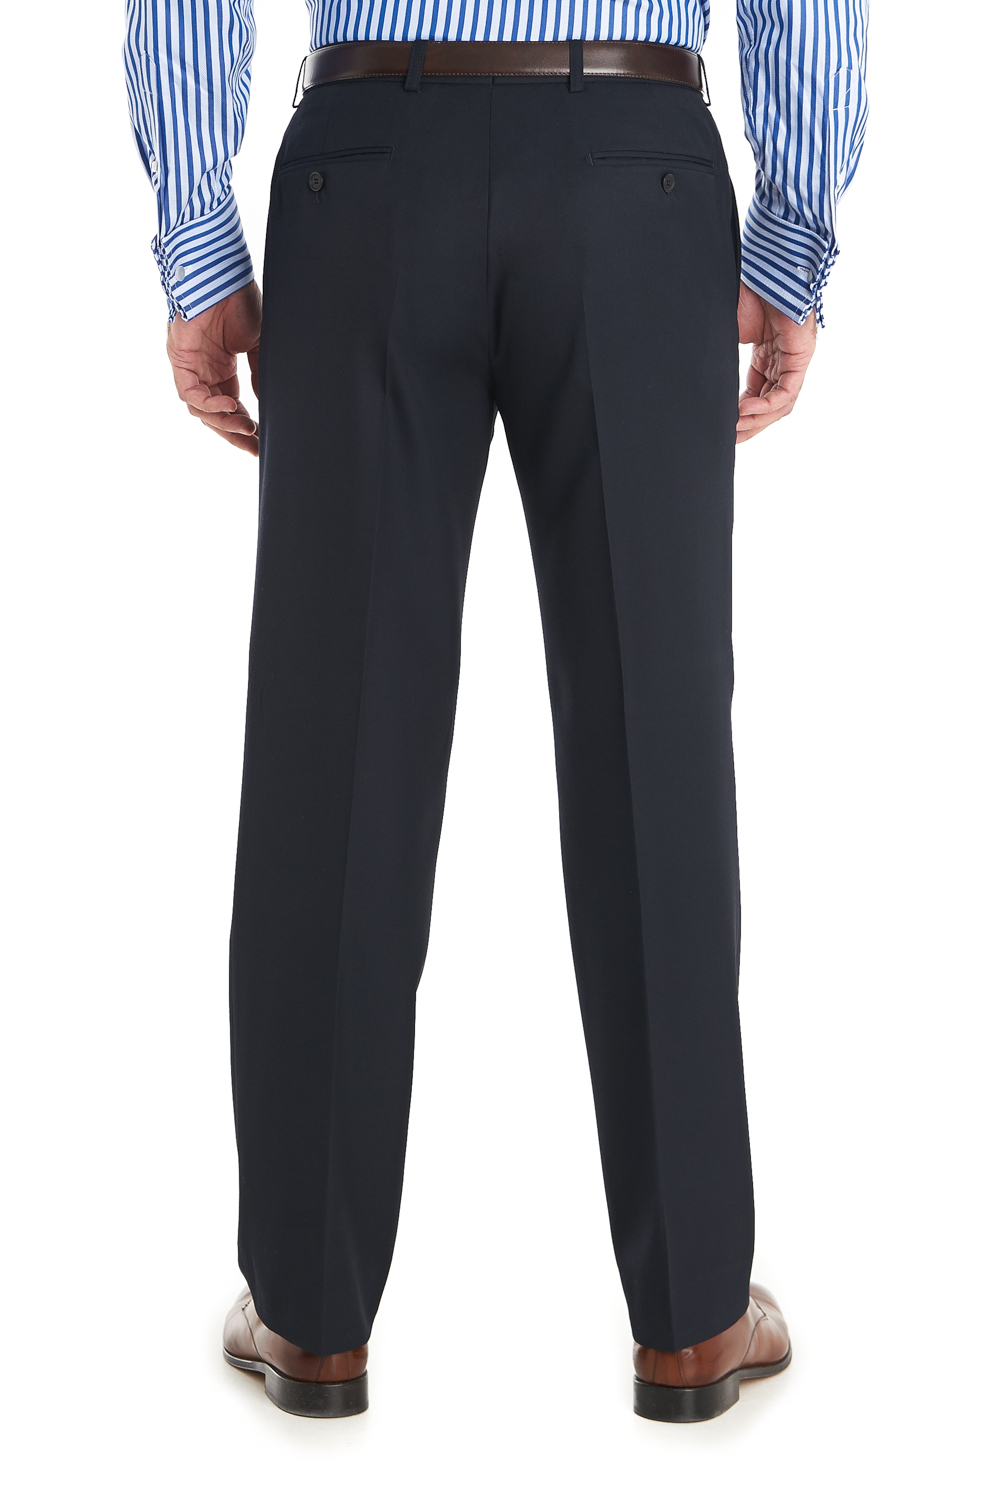 Choose from joggers or smart trousers in the boohooMAN mens trousers sale. Browse cheap men's trousers to find your perfect pair with up to 75% off. Herringbone Skinny Fit Suit Trouser £ £ Skinny Fit Trouser £ £ Skinny Fit Cropped Trouser £ £ Plain Skinny Fit Suit Trouser.